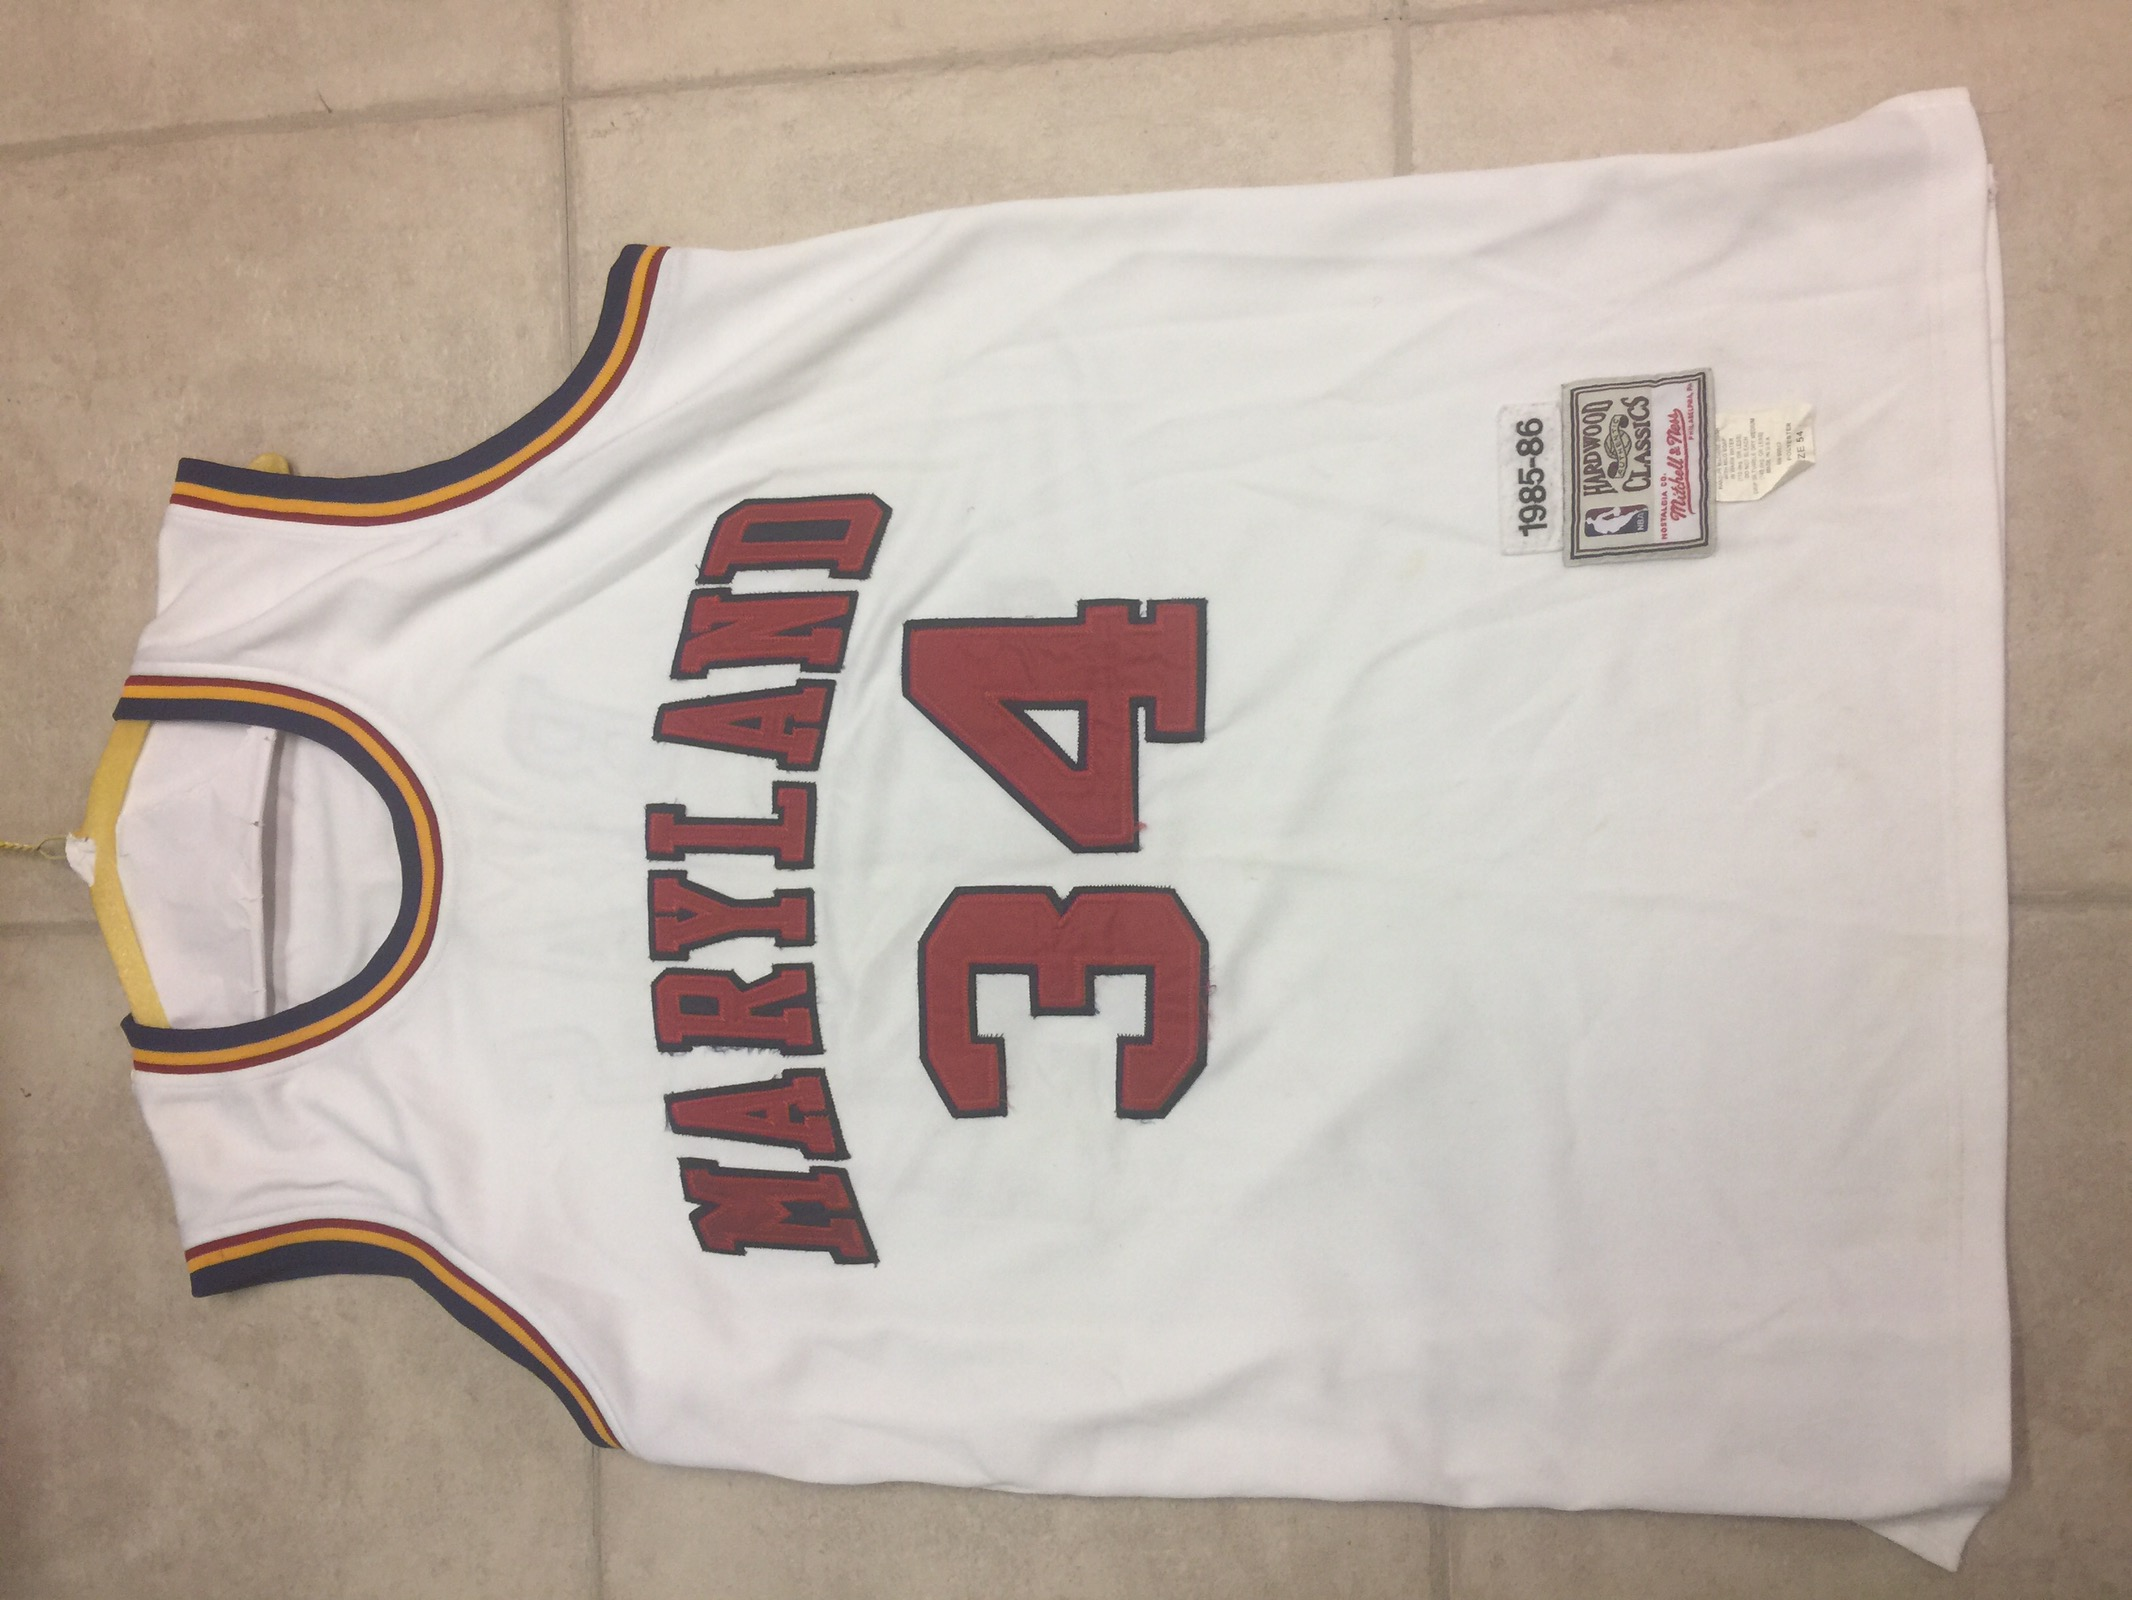 new styles 3fd1e 4a642 Len Bias Maryland Terrapins Mitchell & Ness College Basketball Jersey